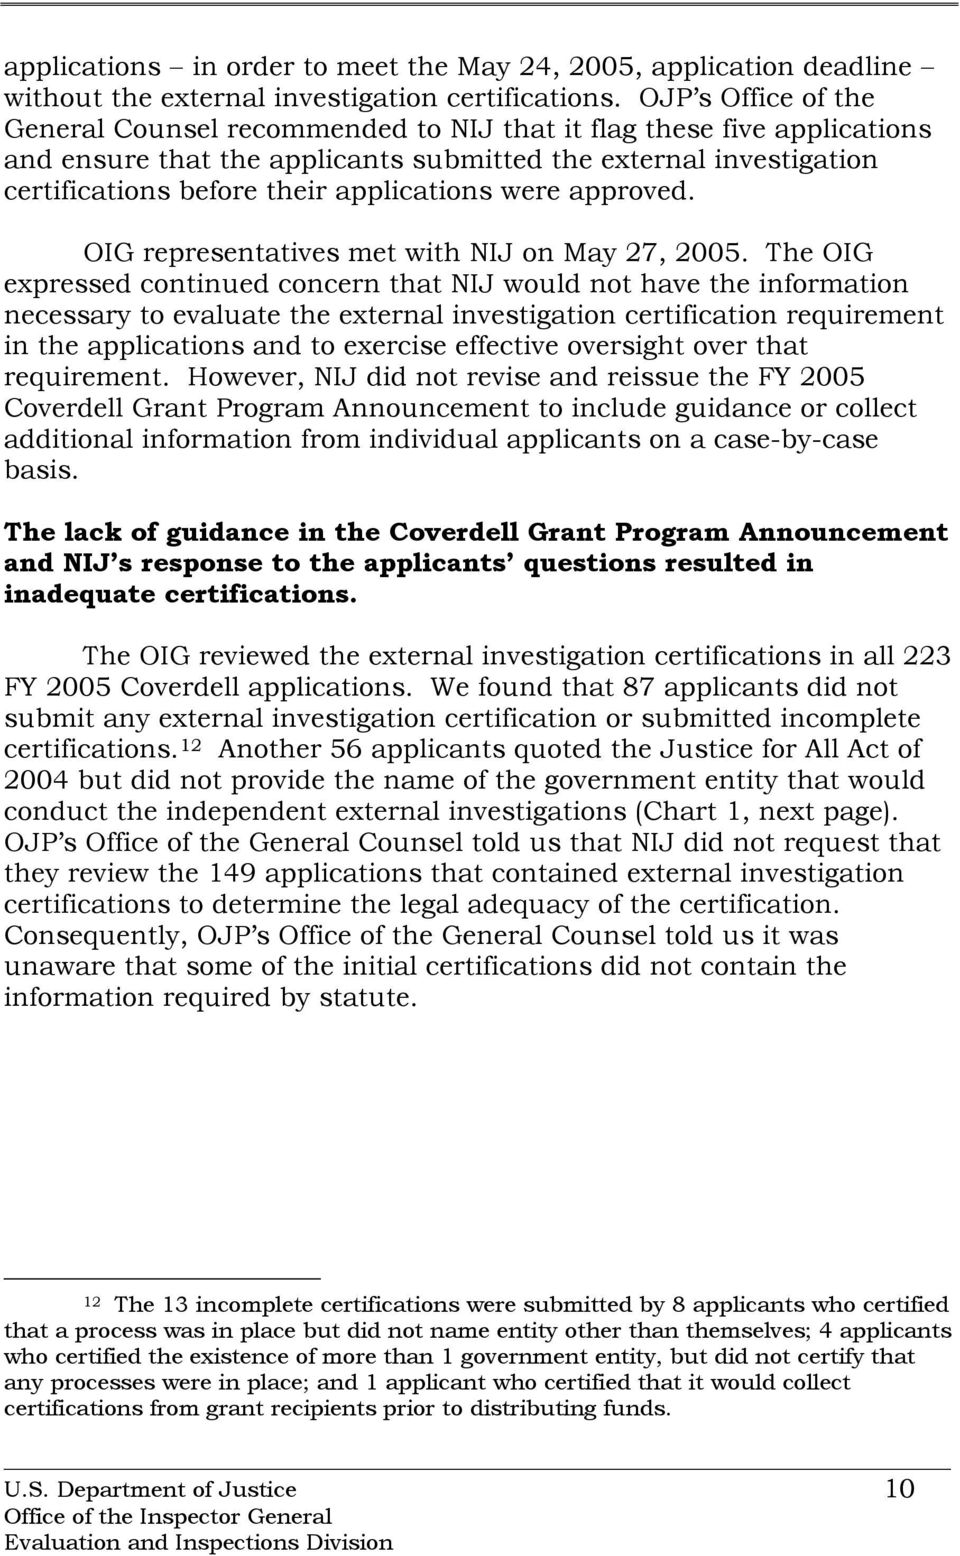 applications were approved. OIG representatives met with NIJ on May 27, 2005.